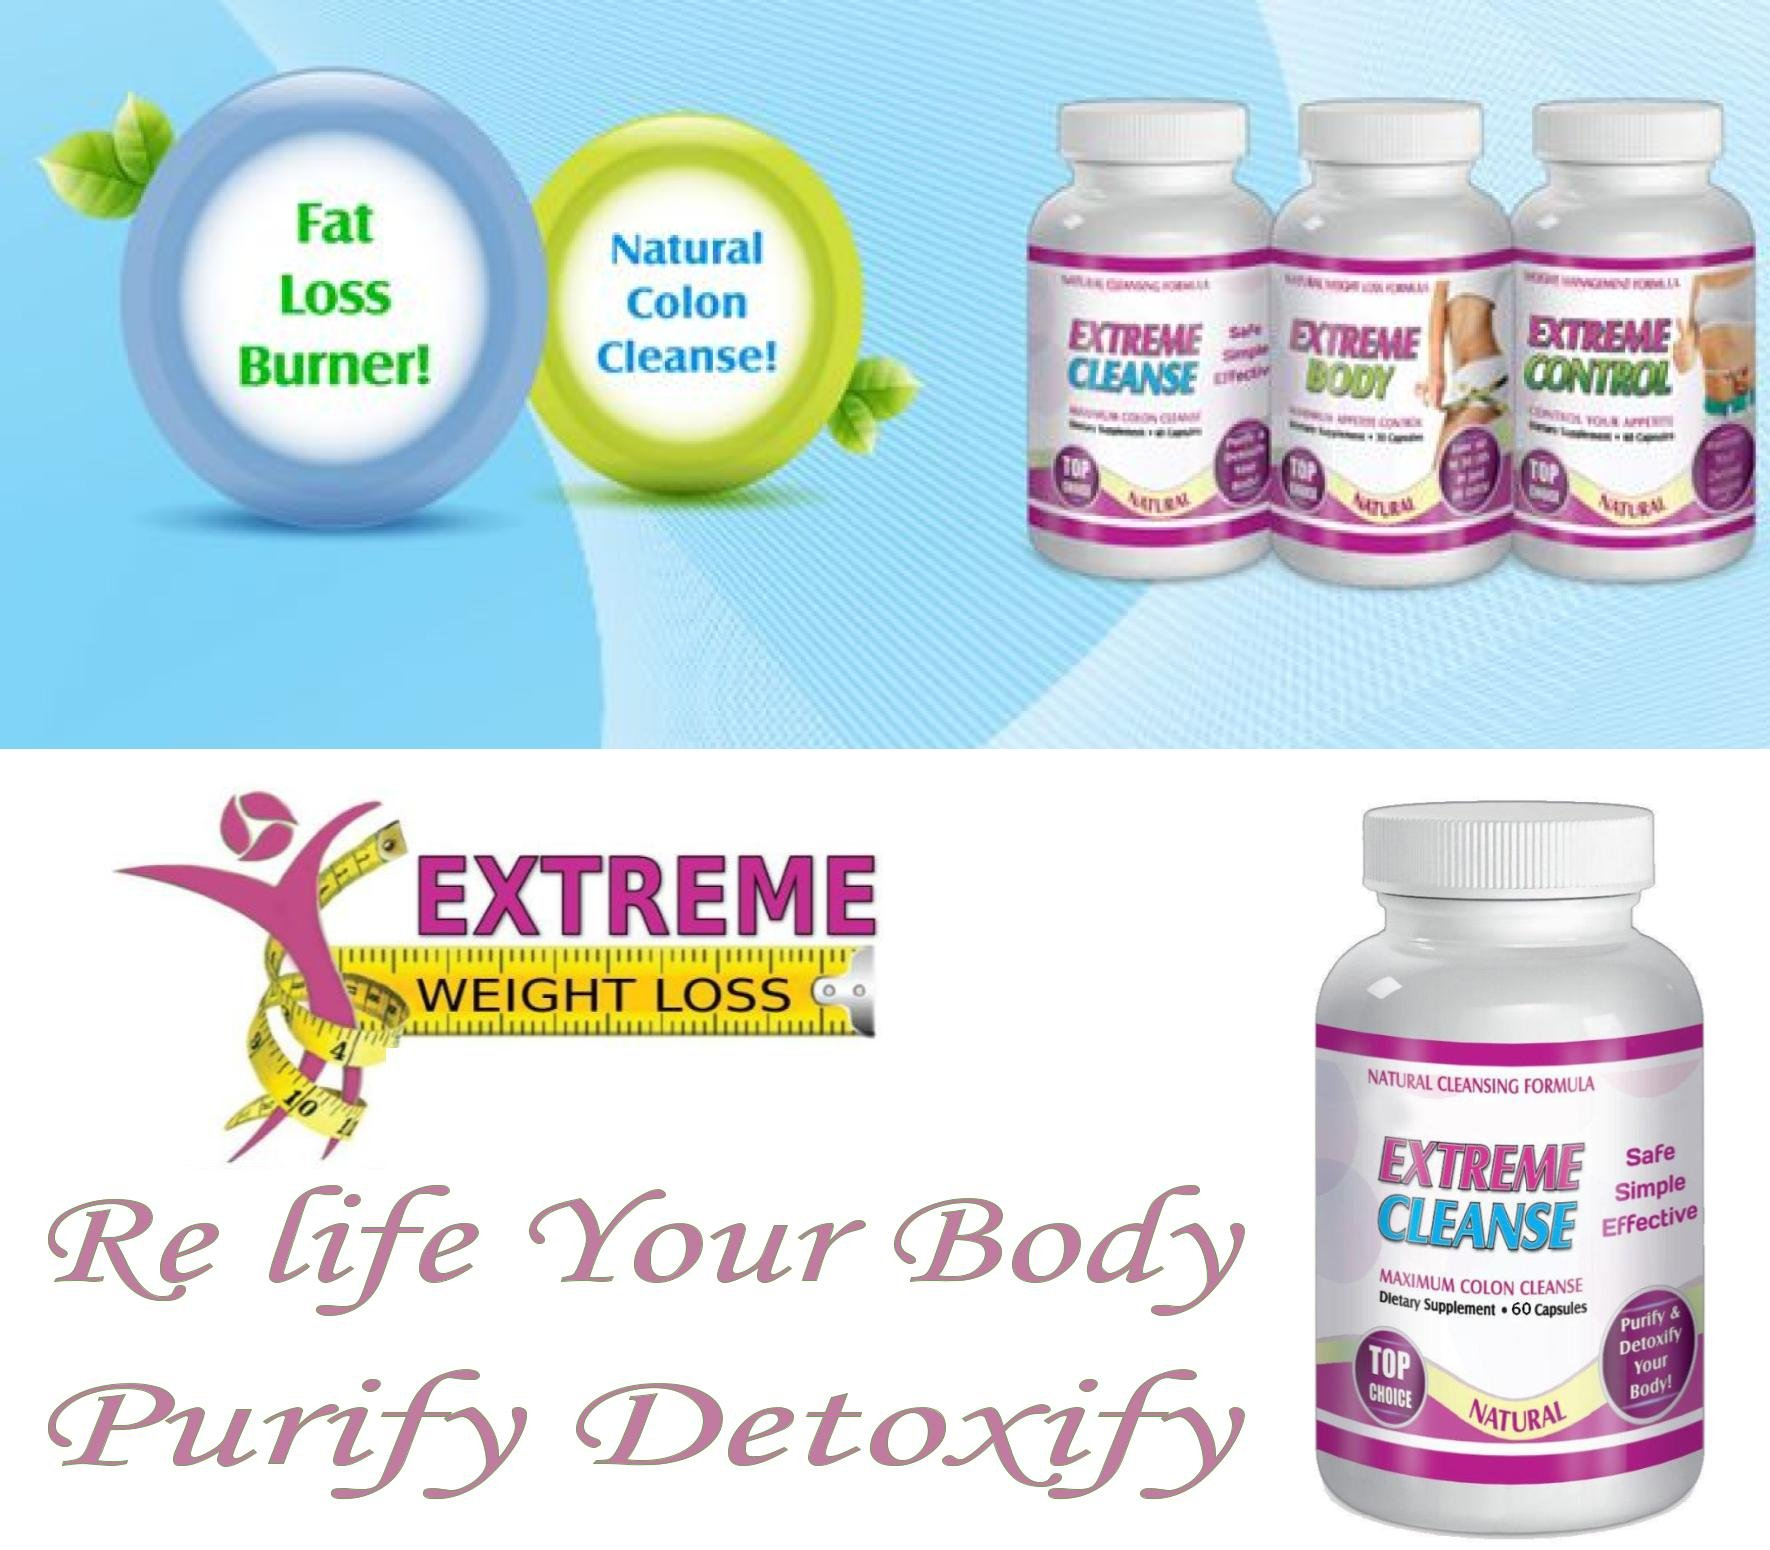 Extreme Cleanse Control Weight loss Diet System Kit 30 Day Supply All Natural by SliMaxUSA (Image #5)